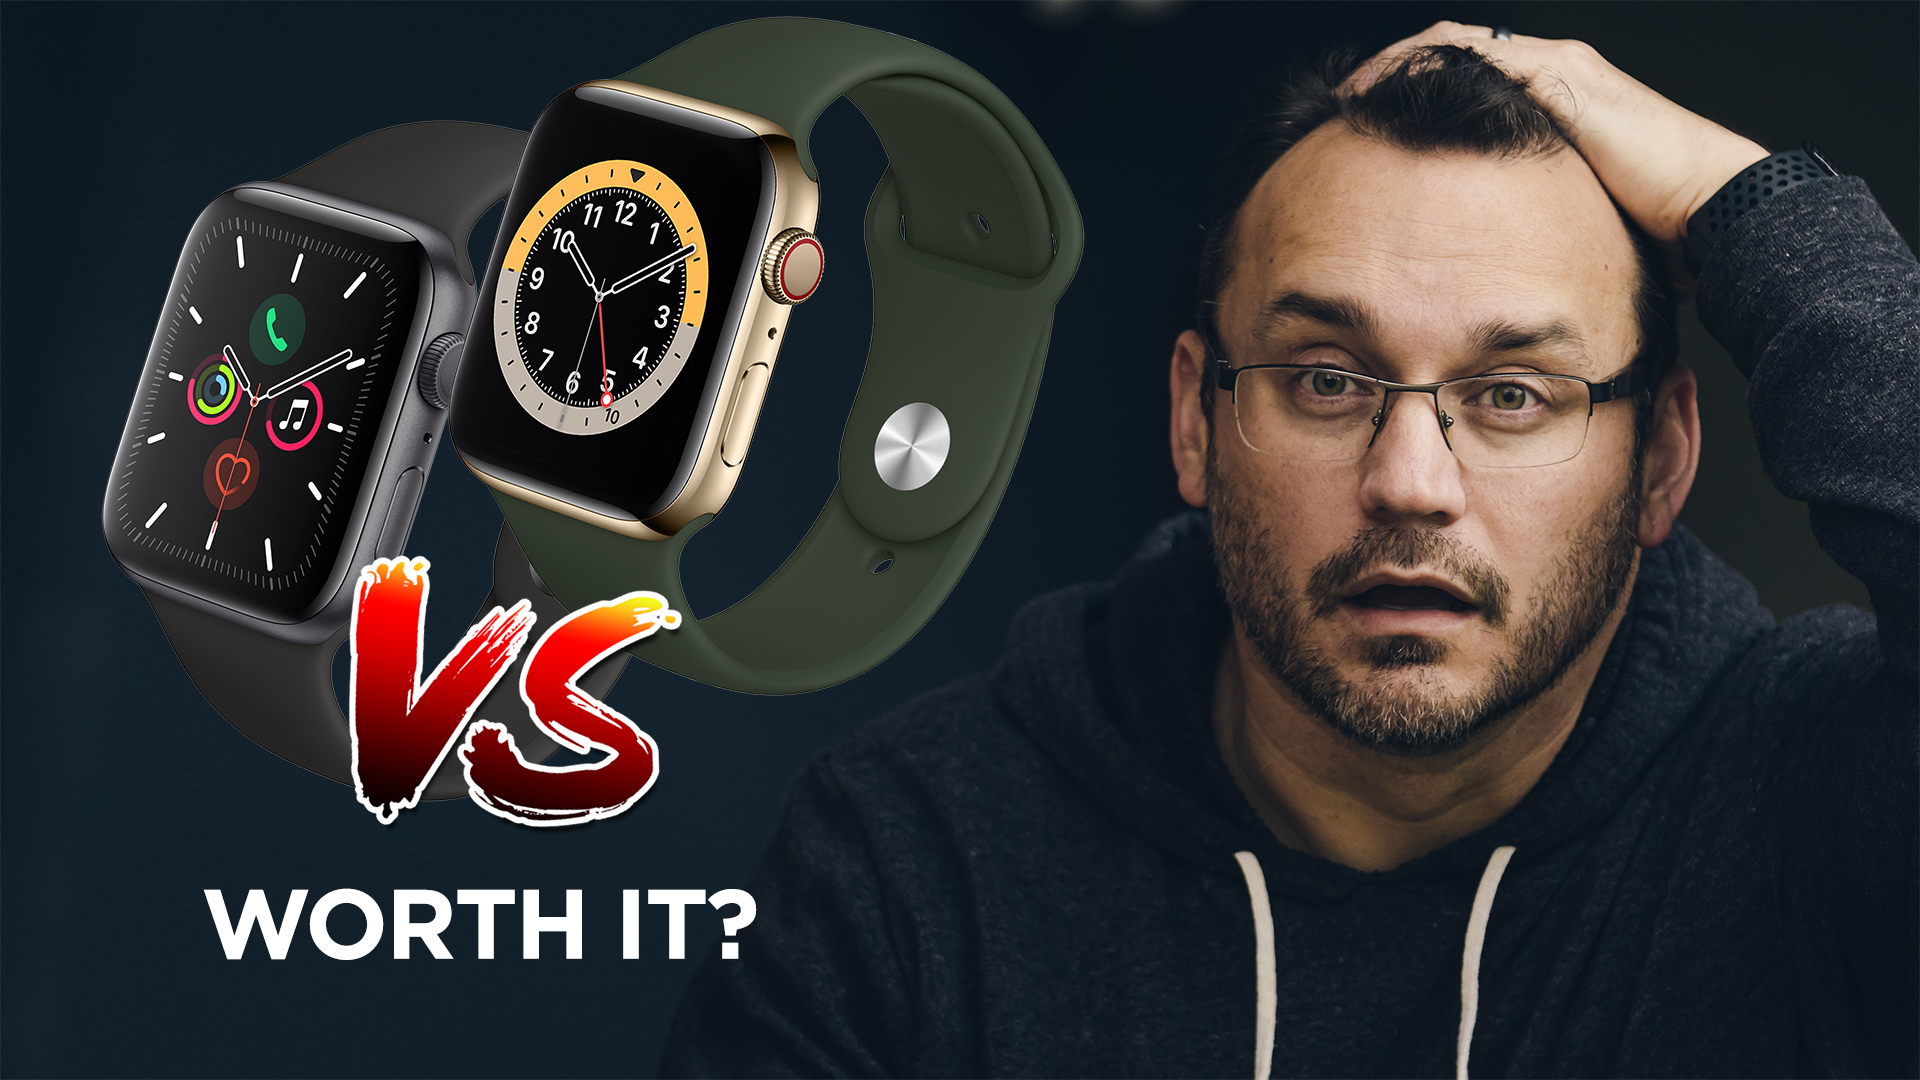 Apple Watch 6 vs 5